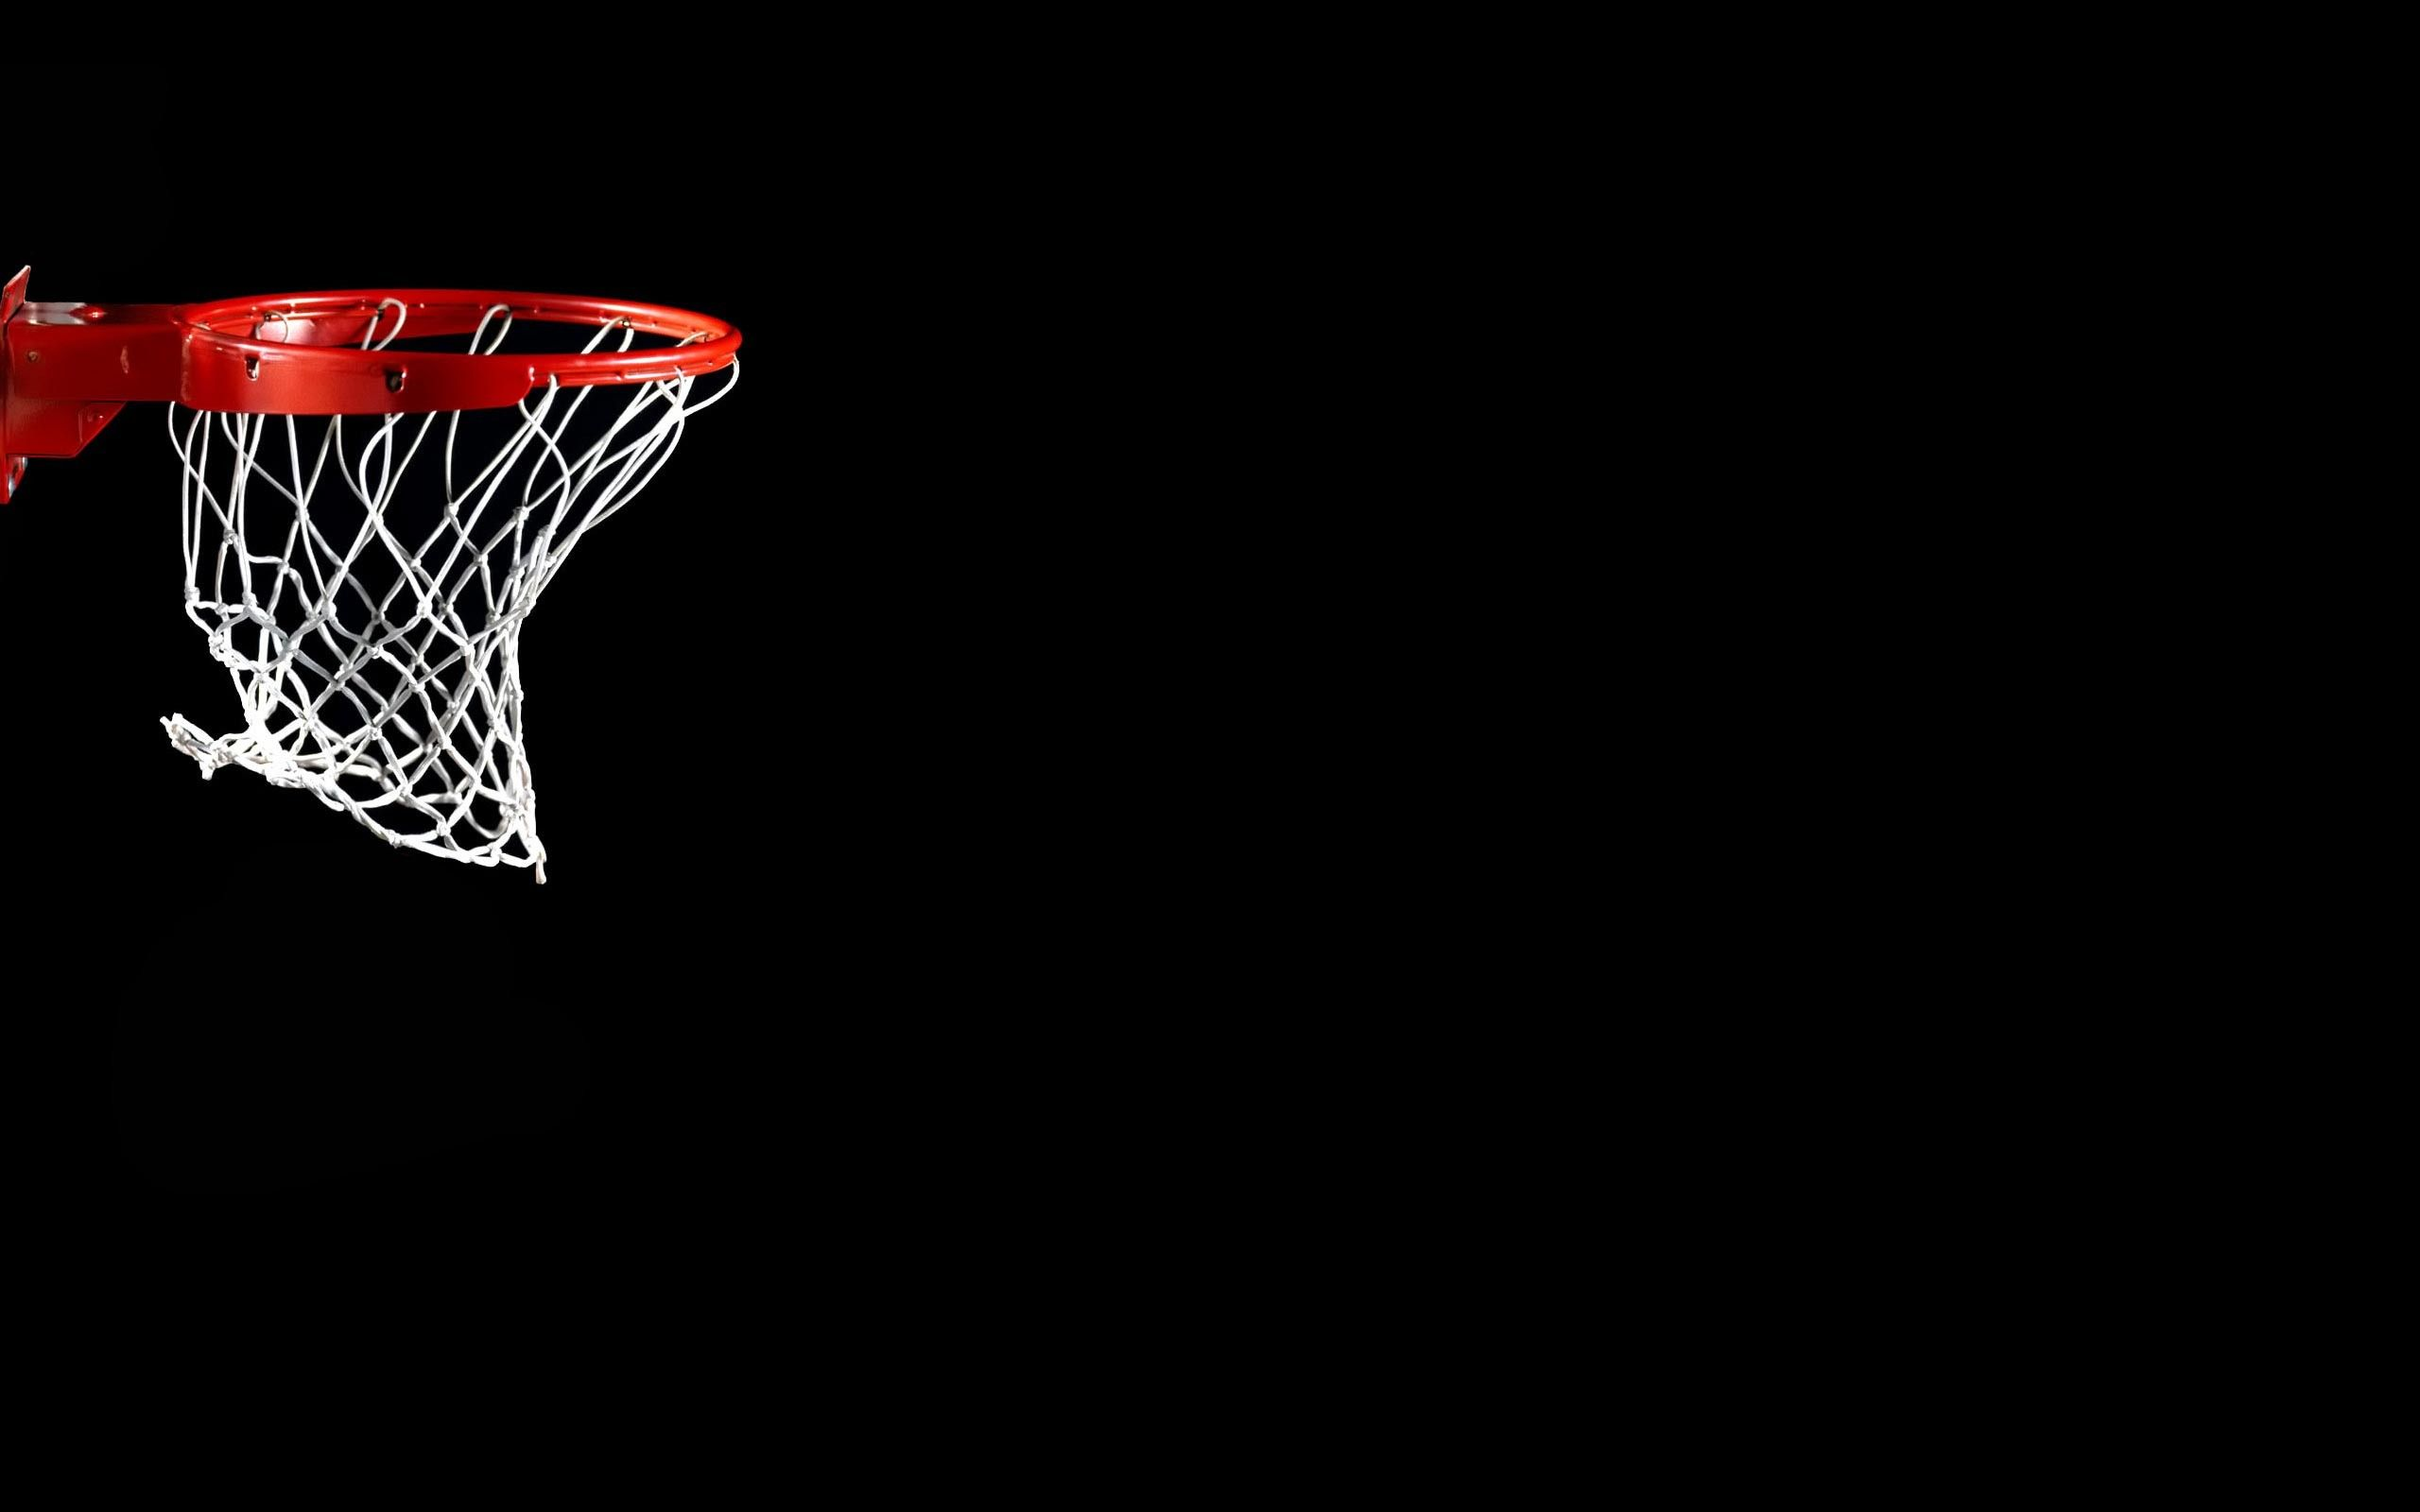 Free Basketball Wallpaper Download http//www